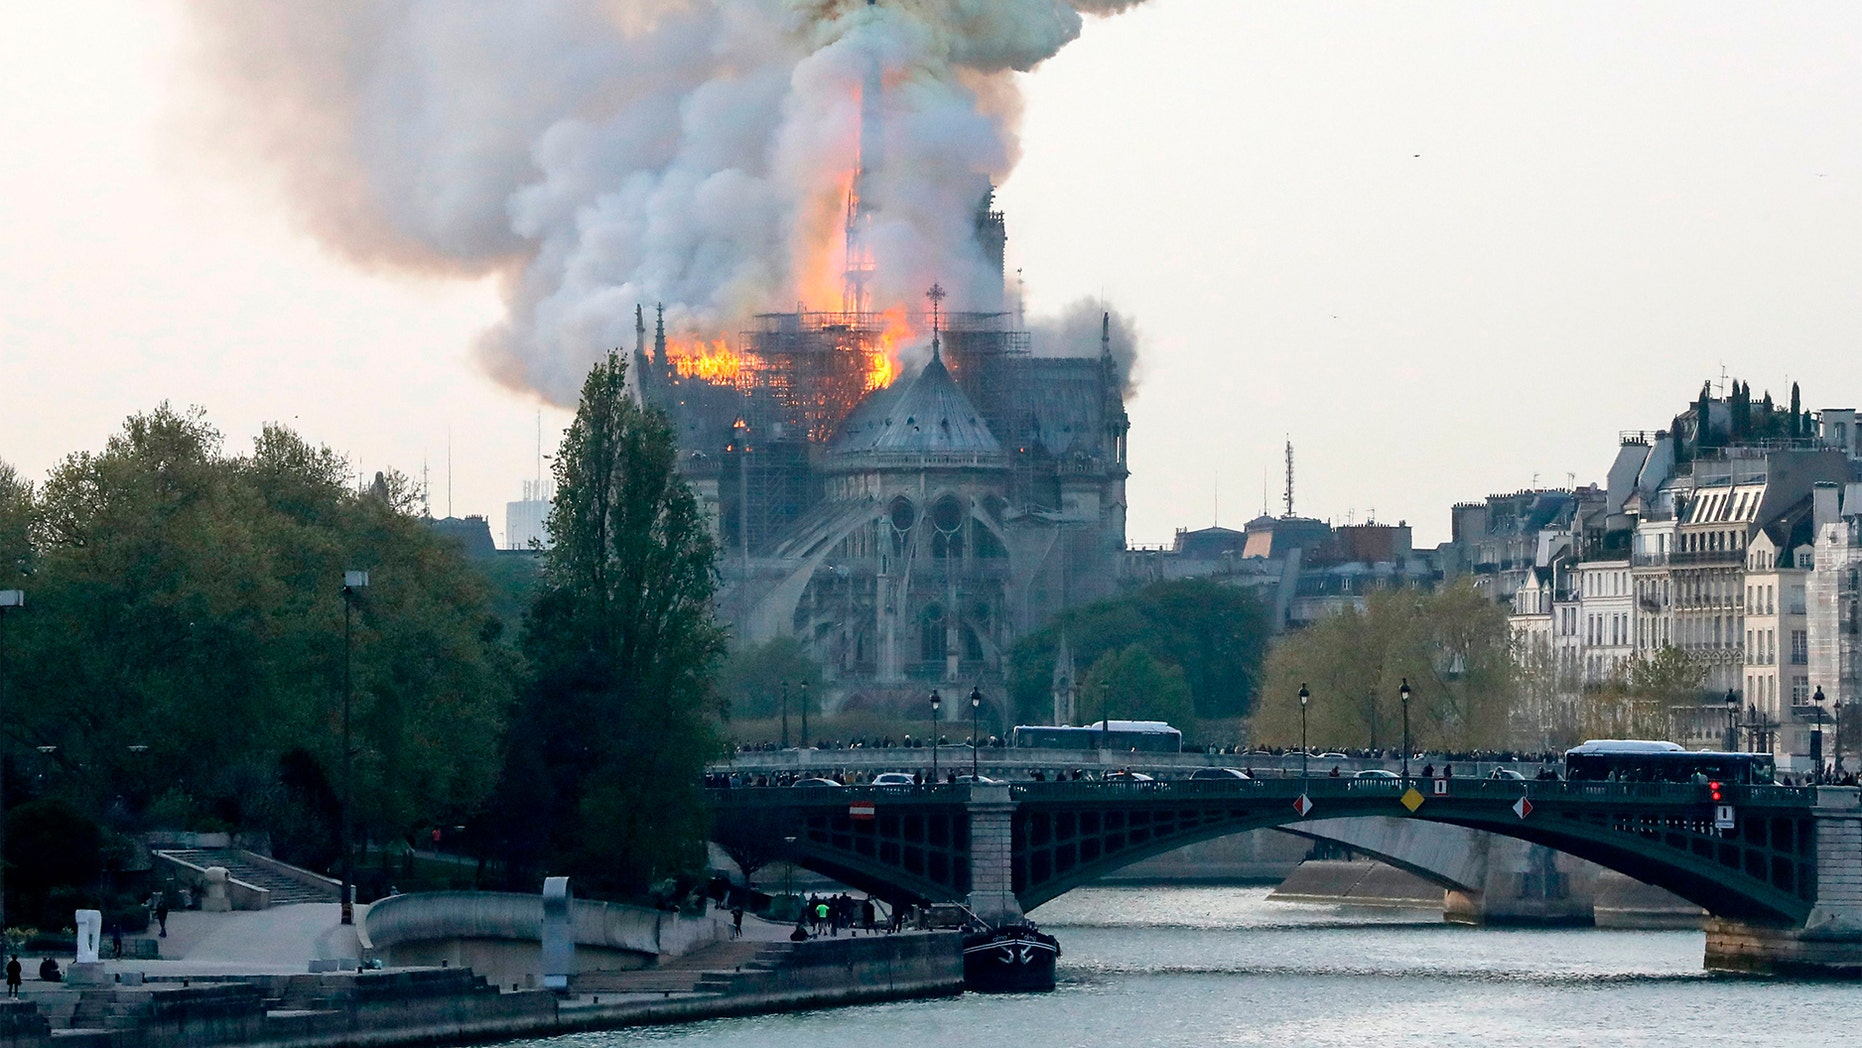 Smoke ascends as flames rise during a fire at the landmark Notre-Dame Cathedral in central Paris on April 15, 2019 afternoon, potentially involving renovation works being carried out at the site, the fire service said.